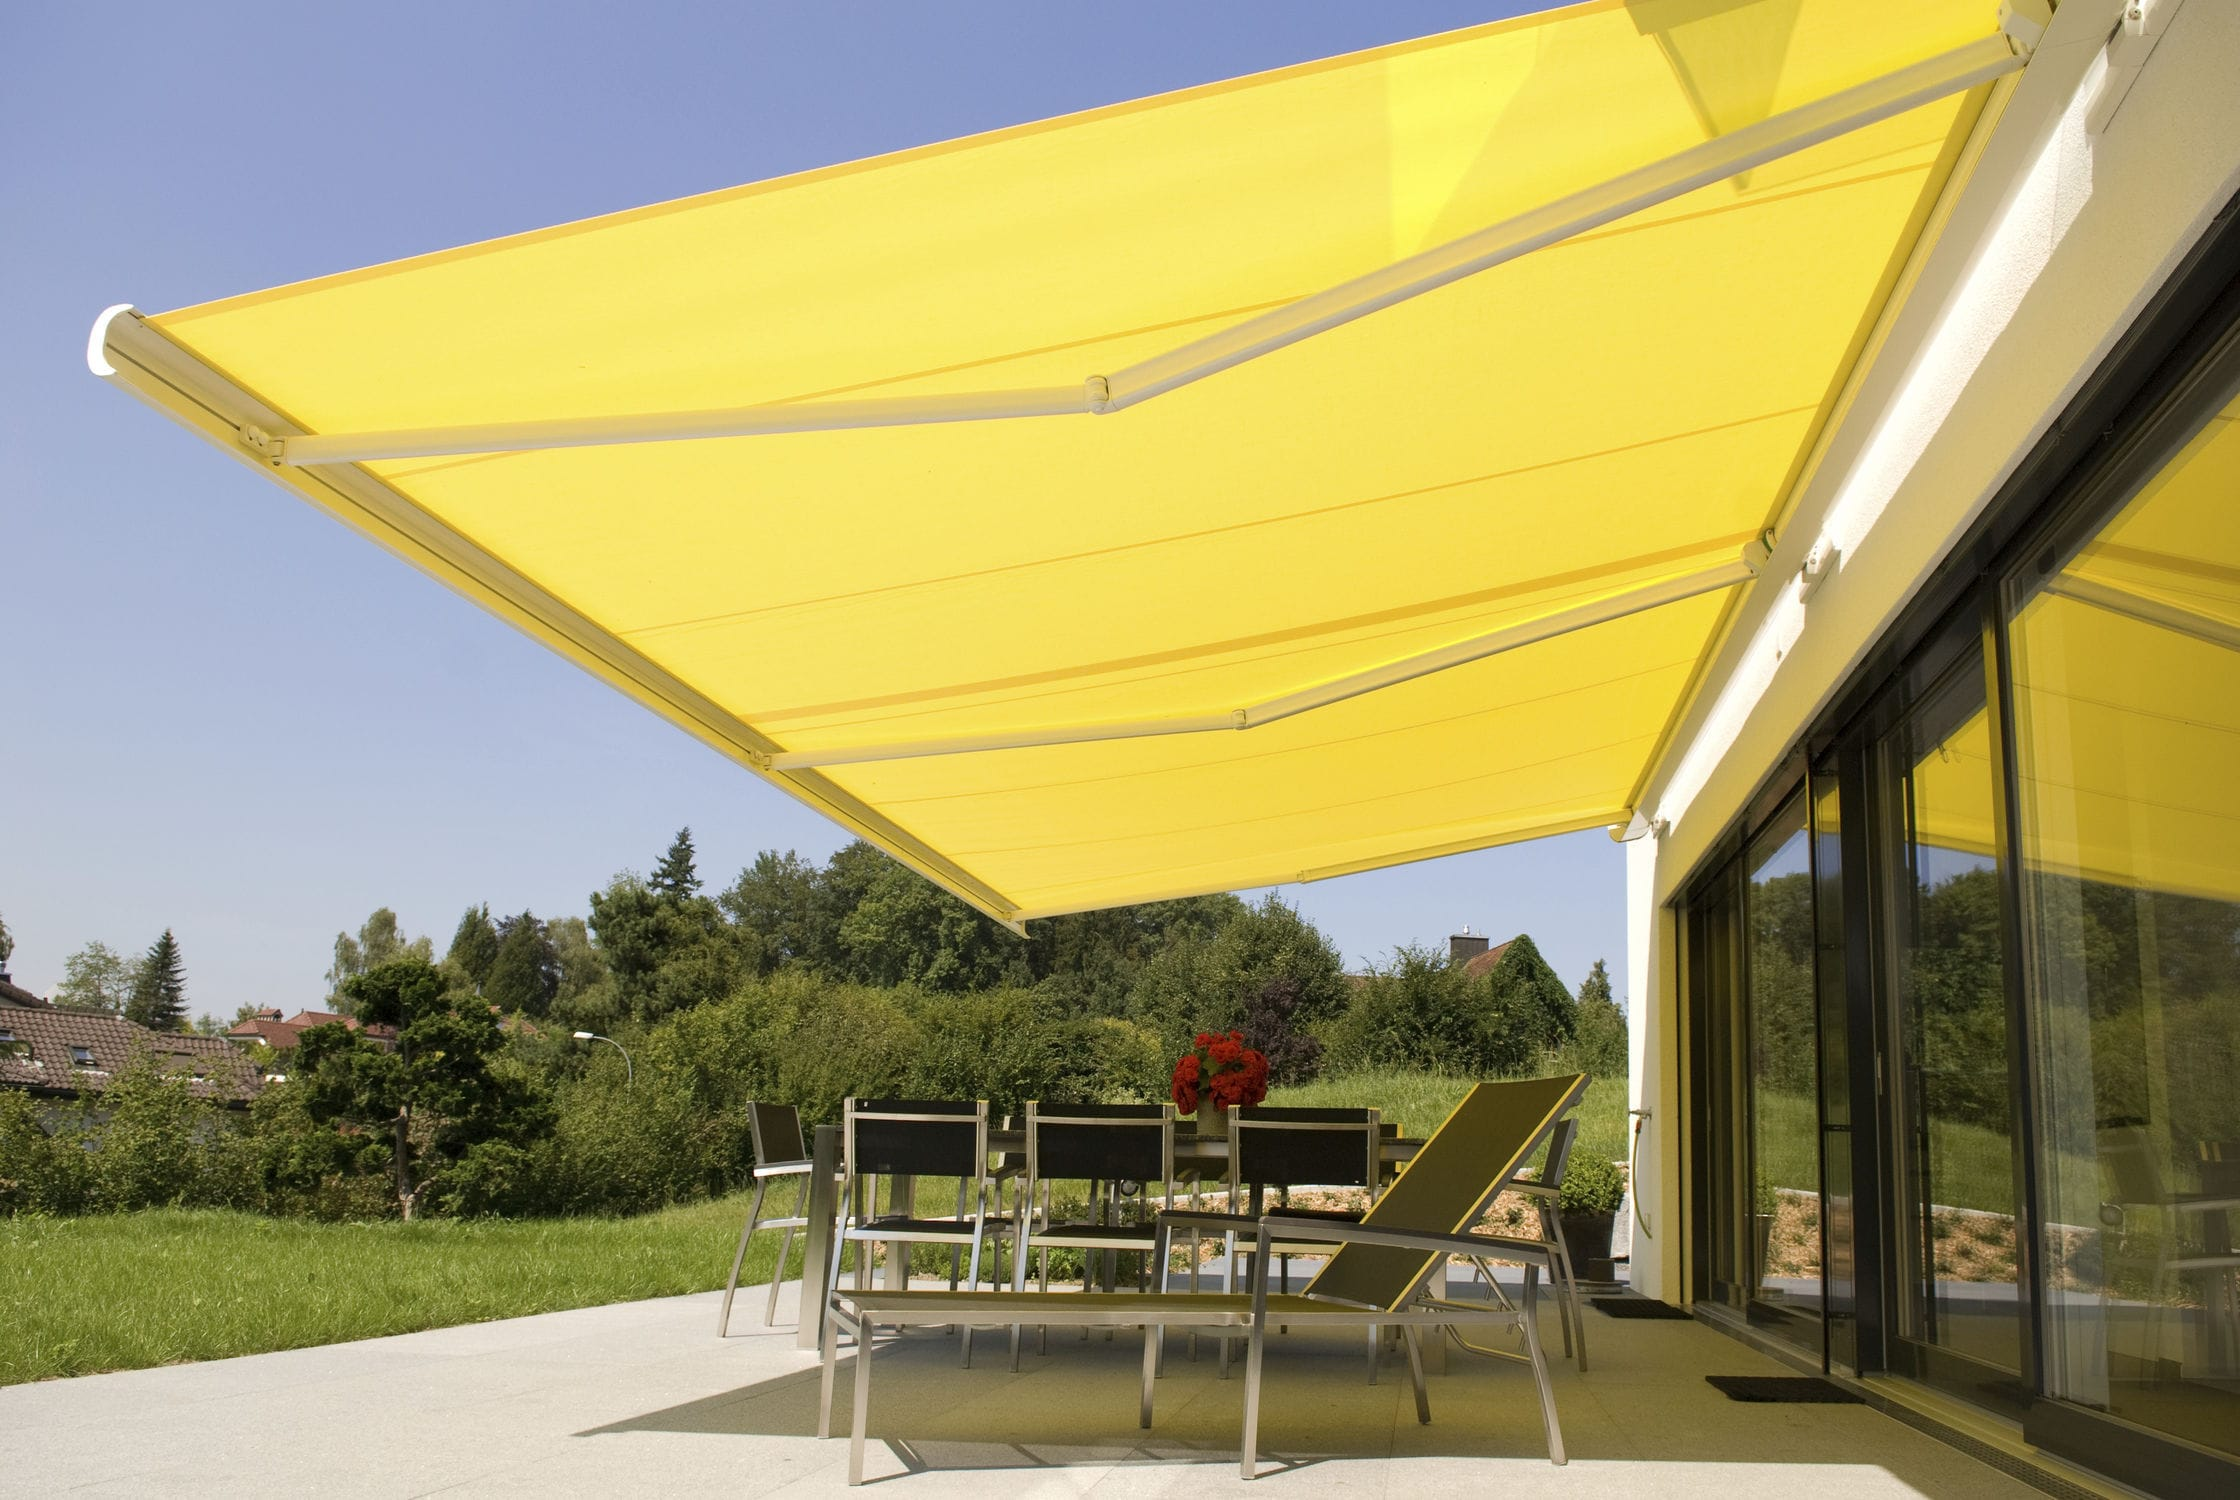 folding products awning retractableawnings palermo awnings motorized arm retractable lateral the com model